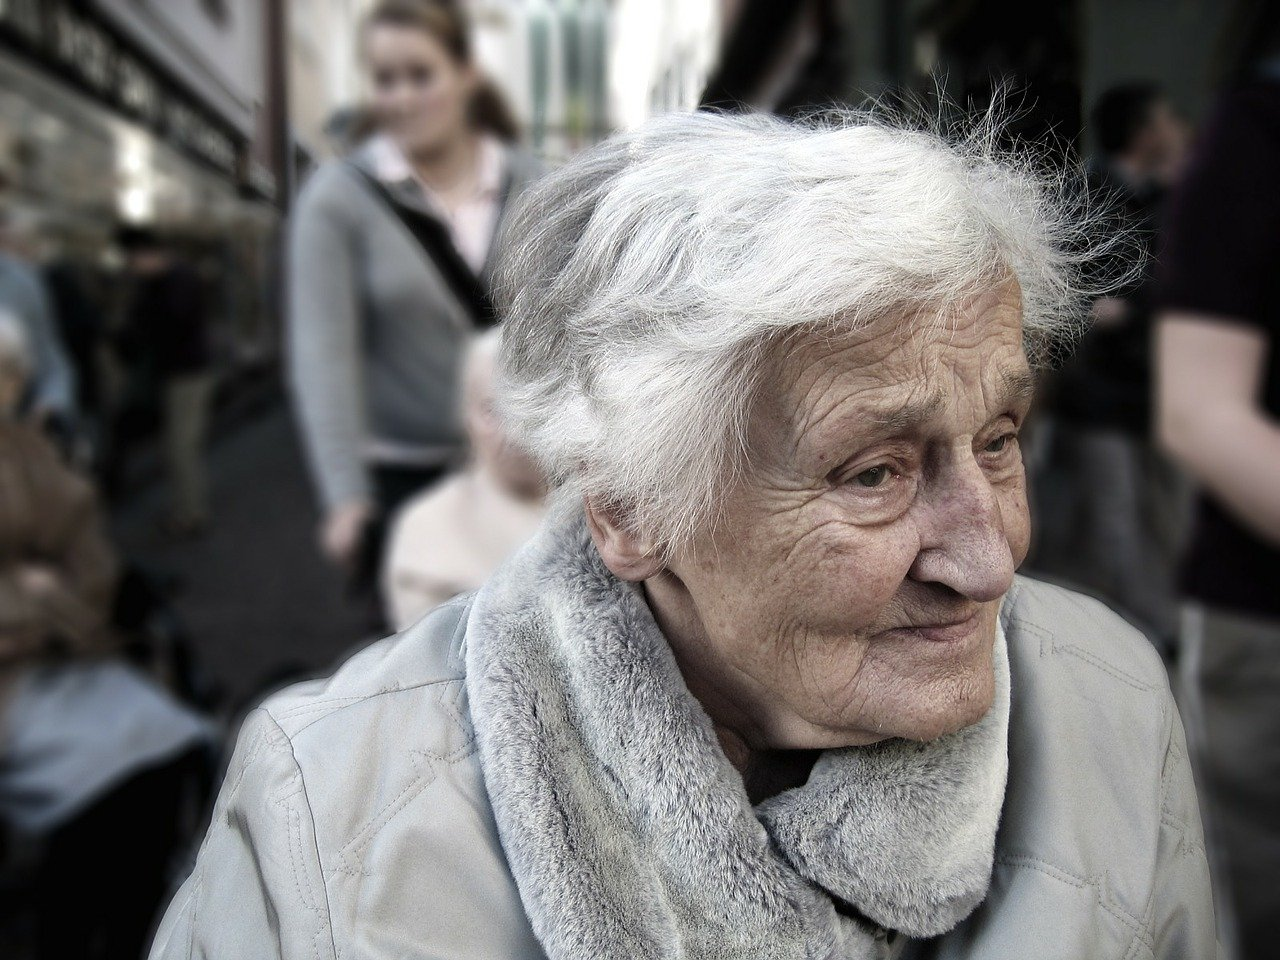 A close-up of an older woman with others behind her   Photo: Pixabay/Gerd Altmann